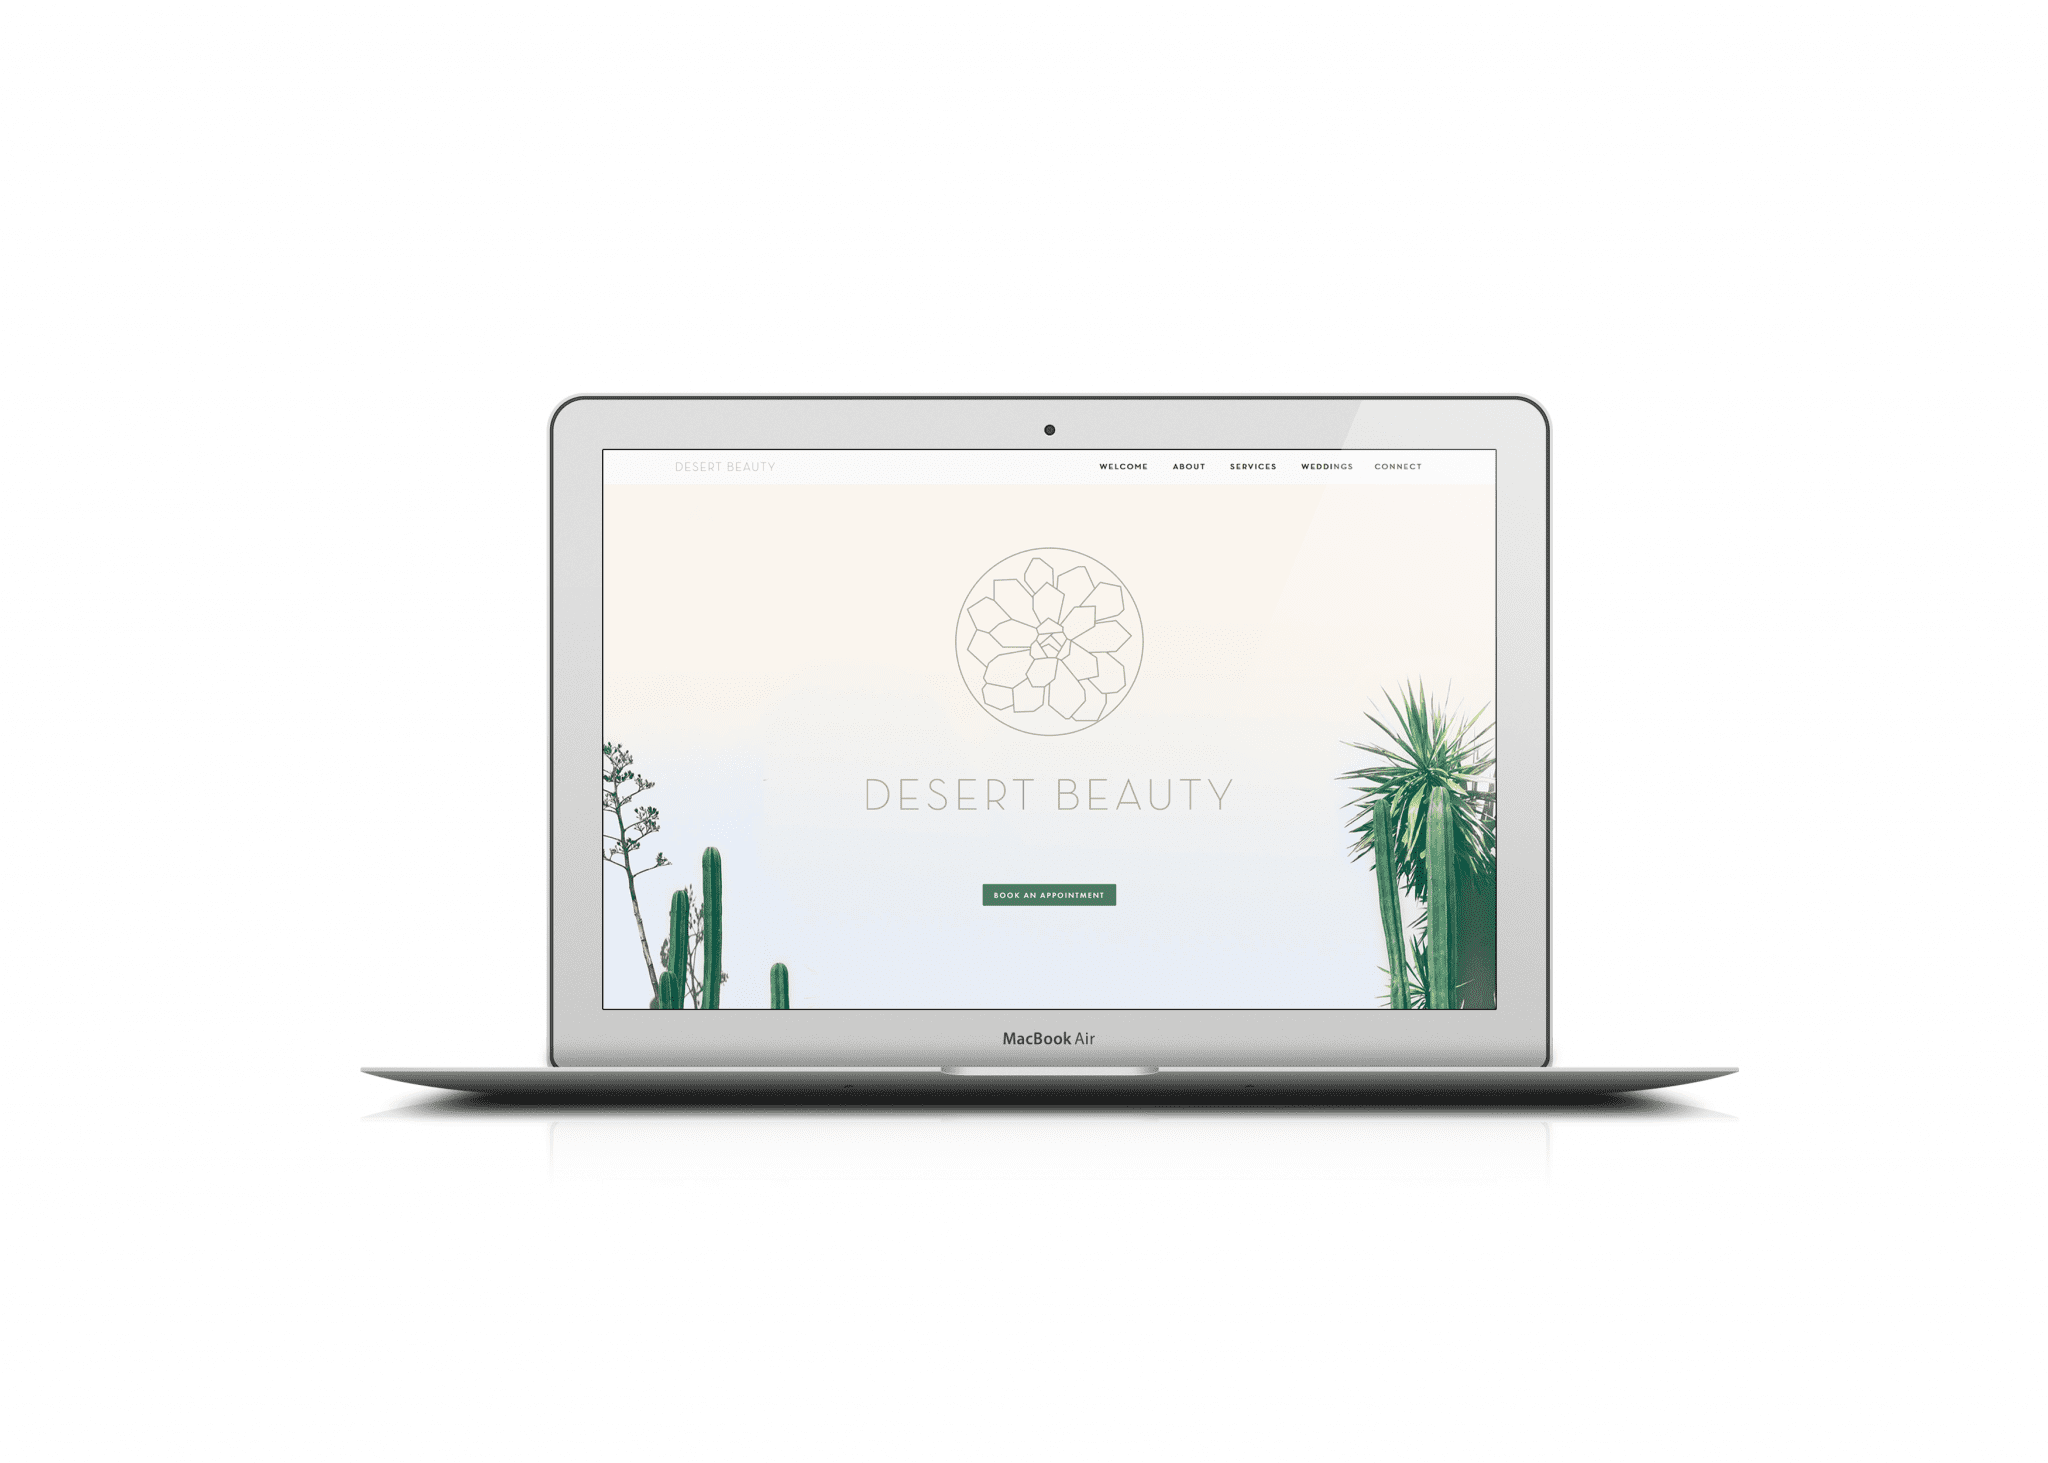 Mabble Media - Creative Agency | Desert Beauty Website Design